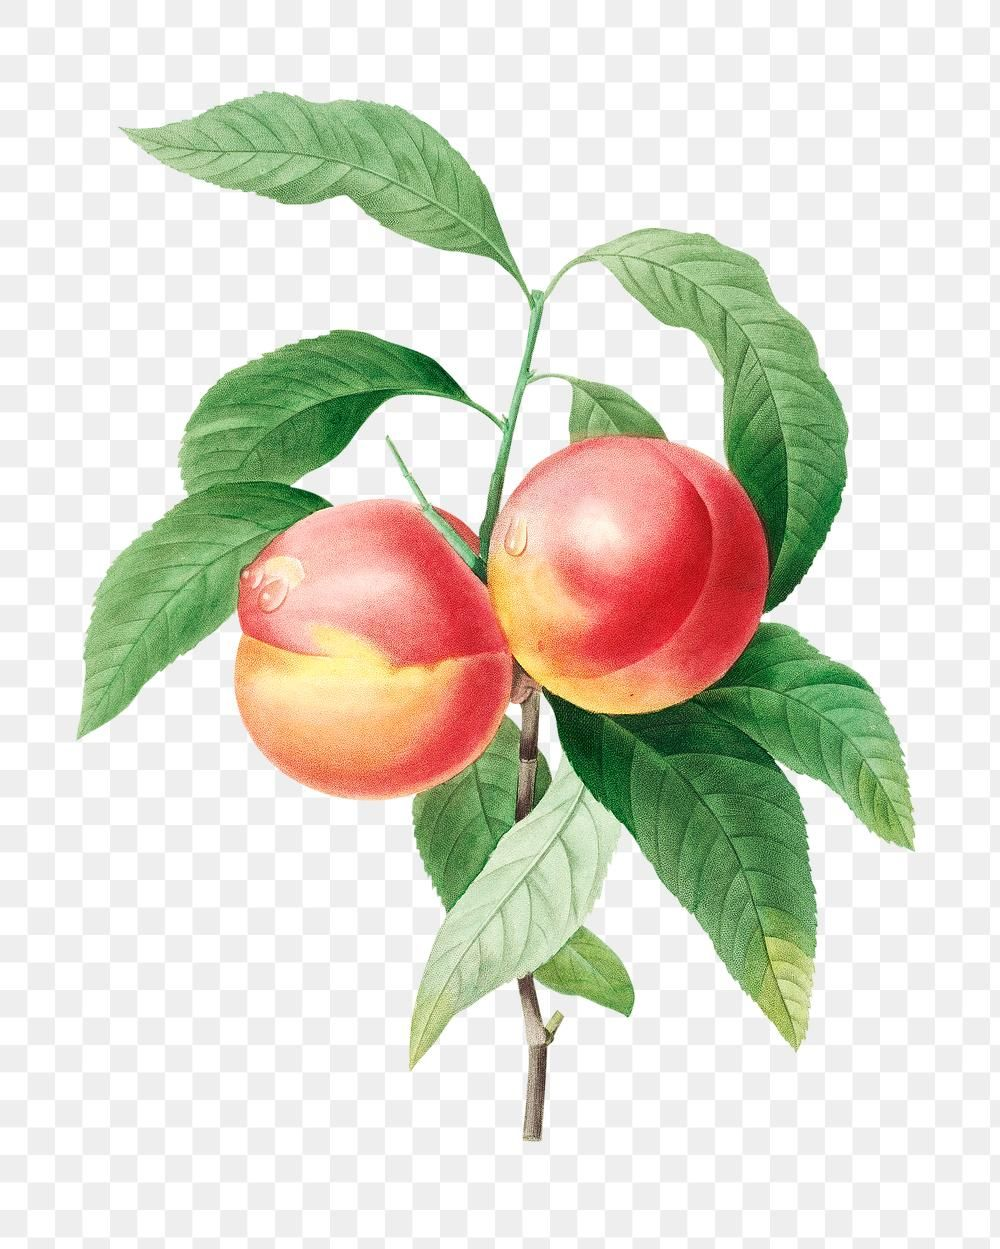 Peaches On A Branch Sticker Overlay Design Resource Free Image By Rawpixel Com In 2020 Overlays Free Illustrations Botanical Illustration